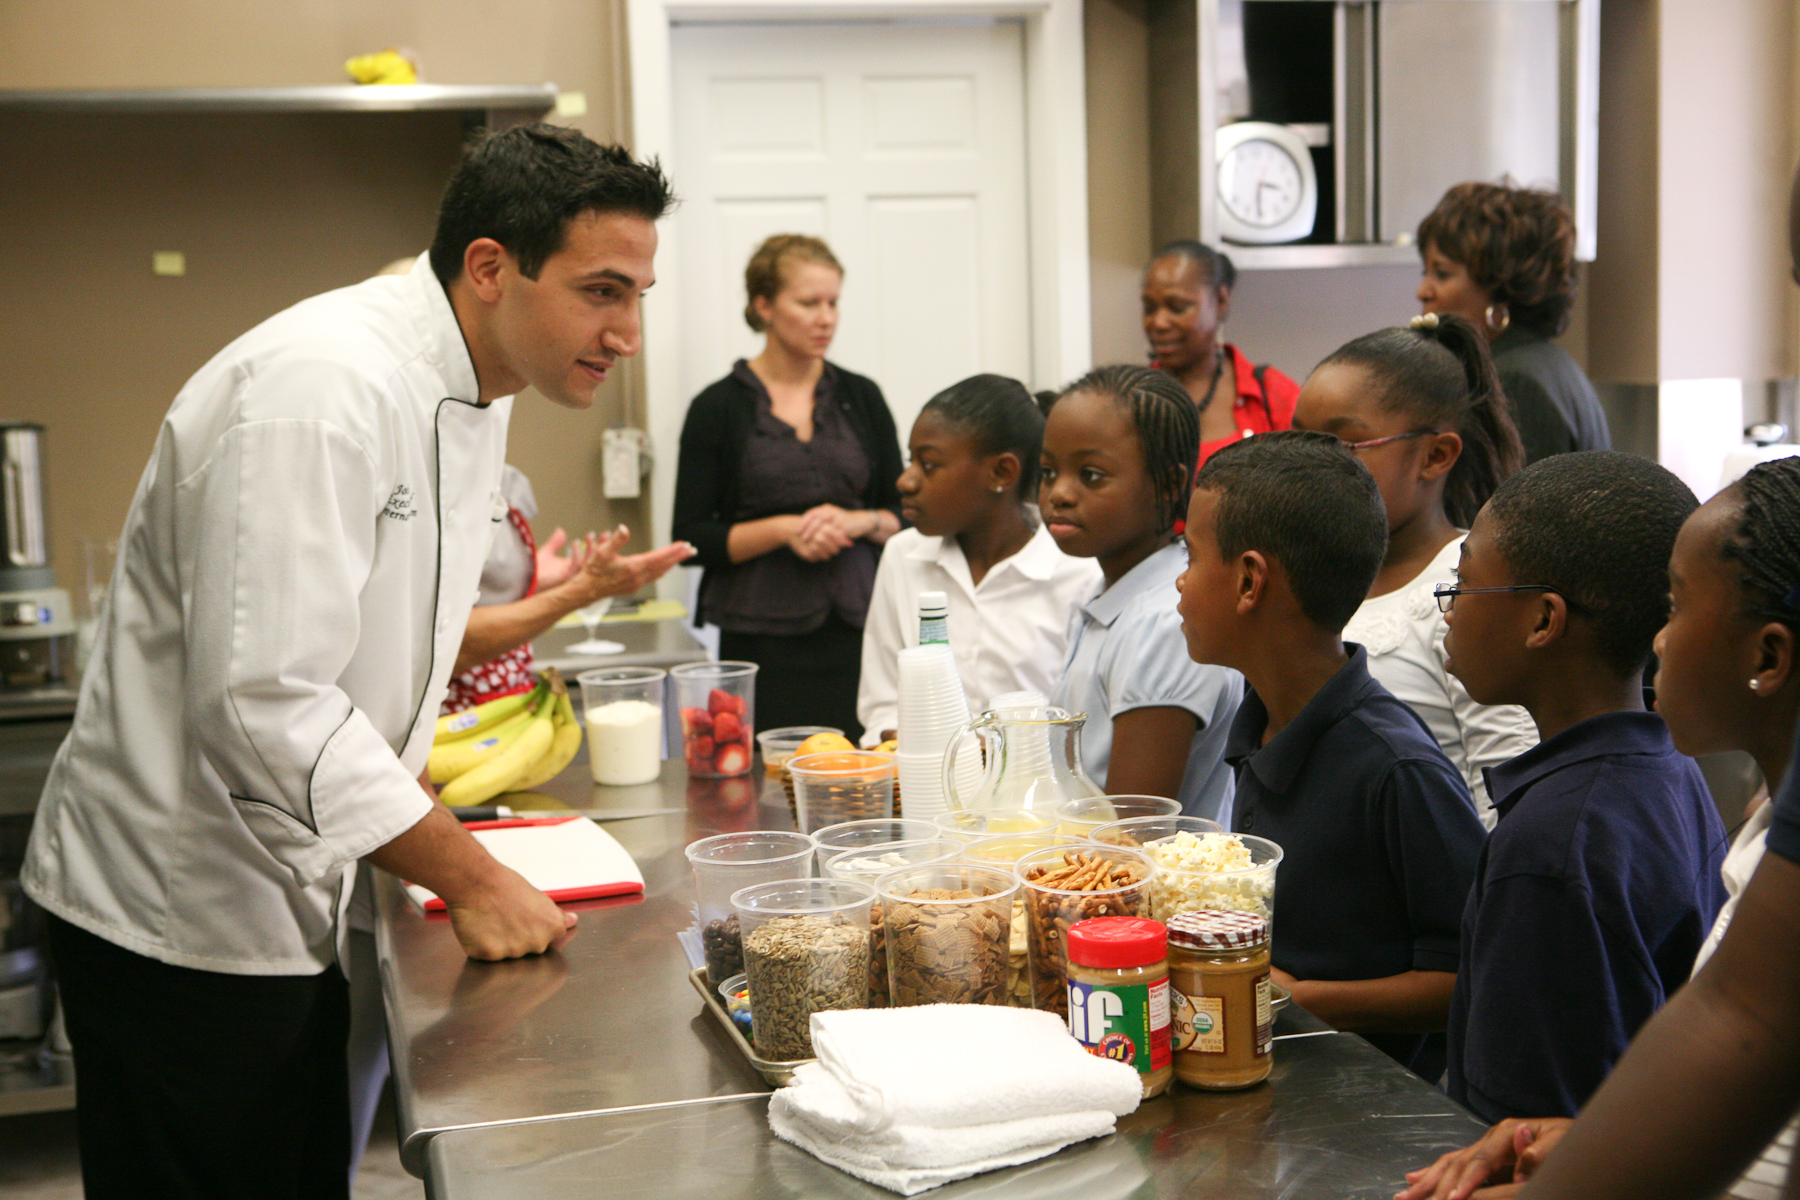 Chef Minas, at the Governor's Mansion, educating local students and community members demonstrating a simple healthy snack substitute.